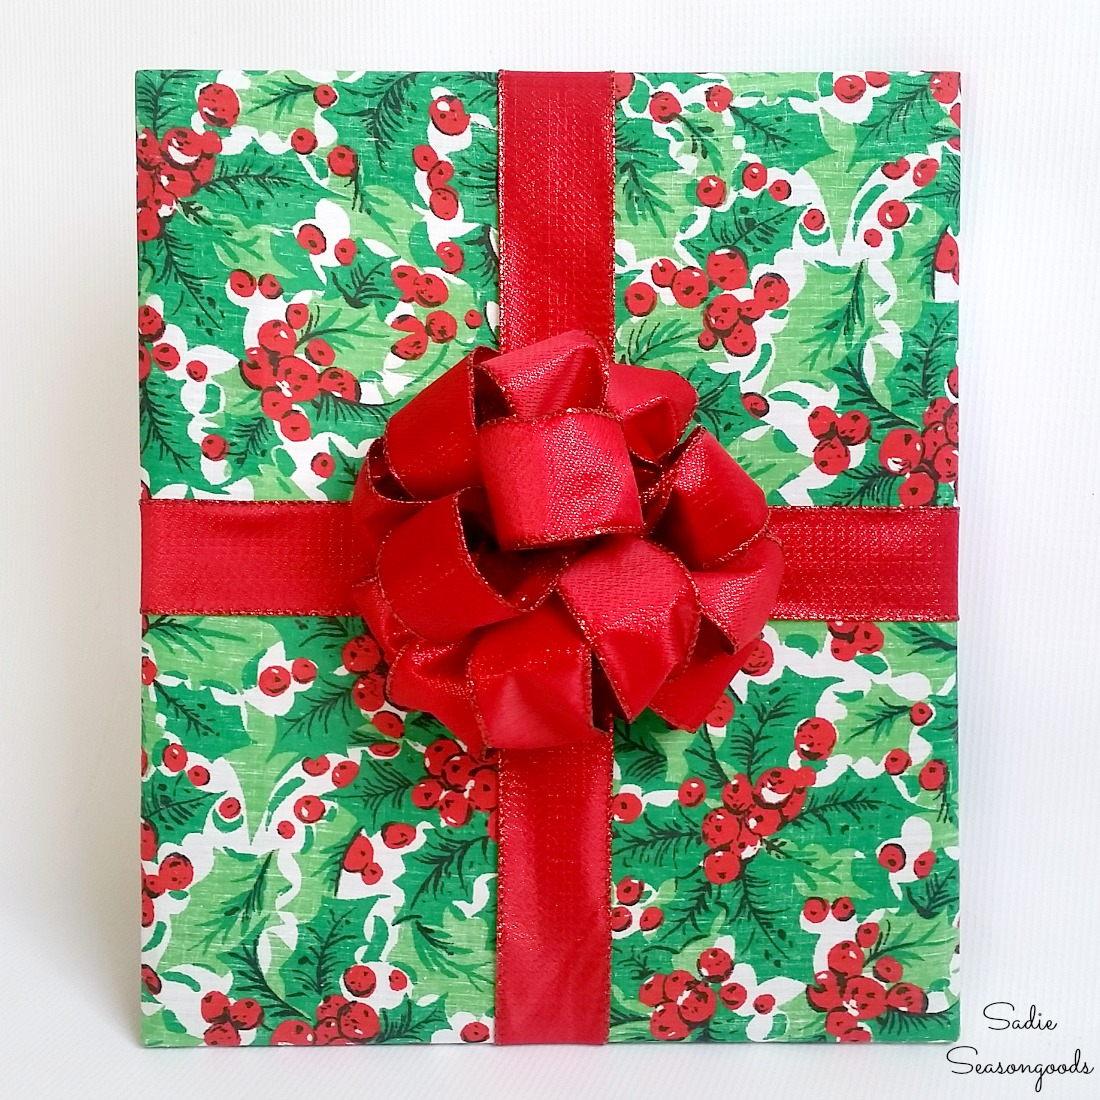 Cheap Christmas Decorations that Look Like Wrapped Gifts